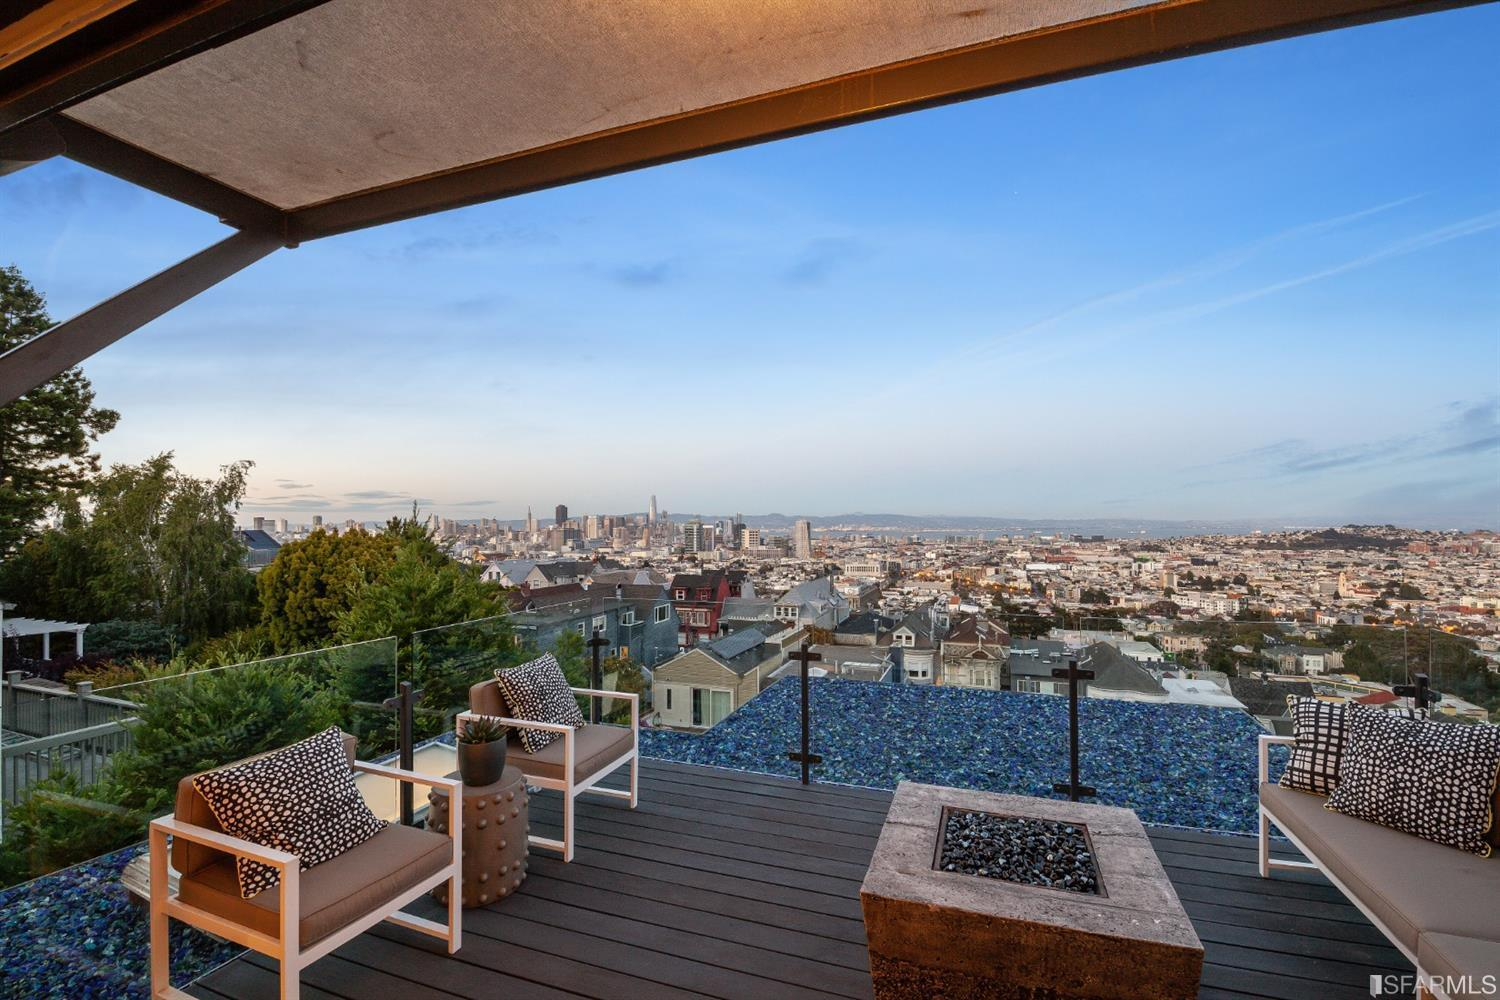 Balcony with modern outdoor furniture and a firepit overlooking the city